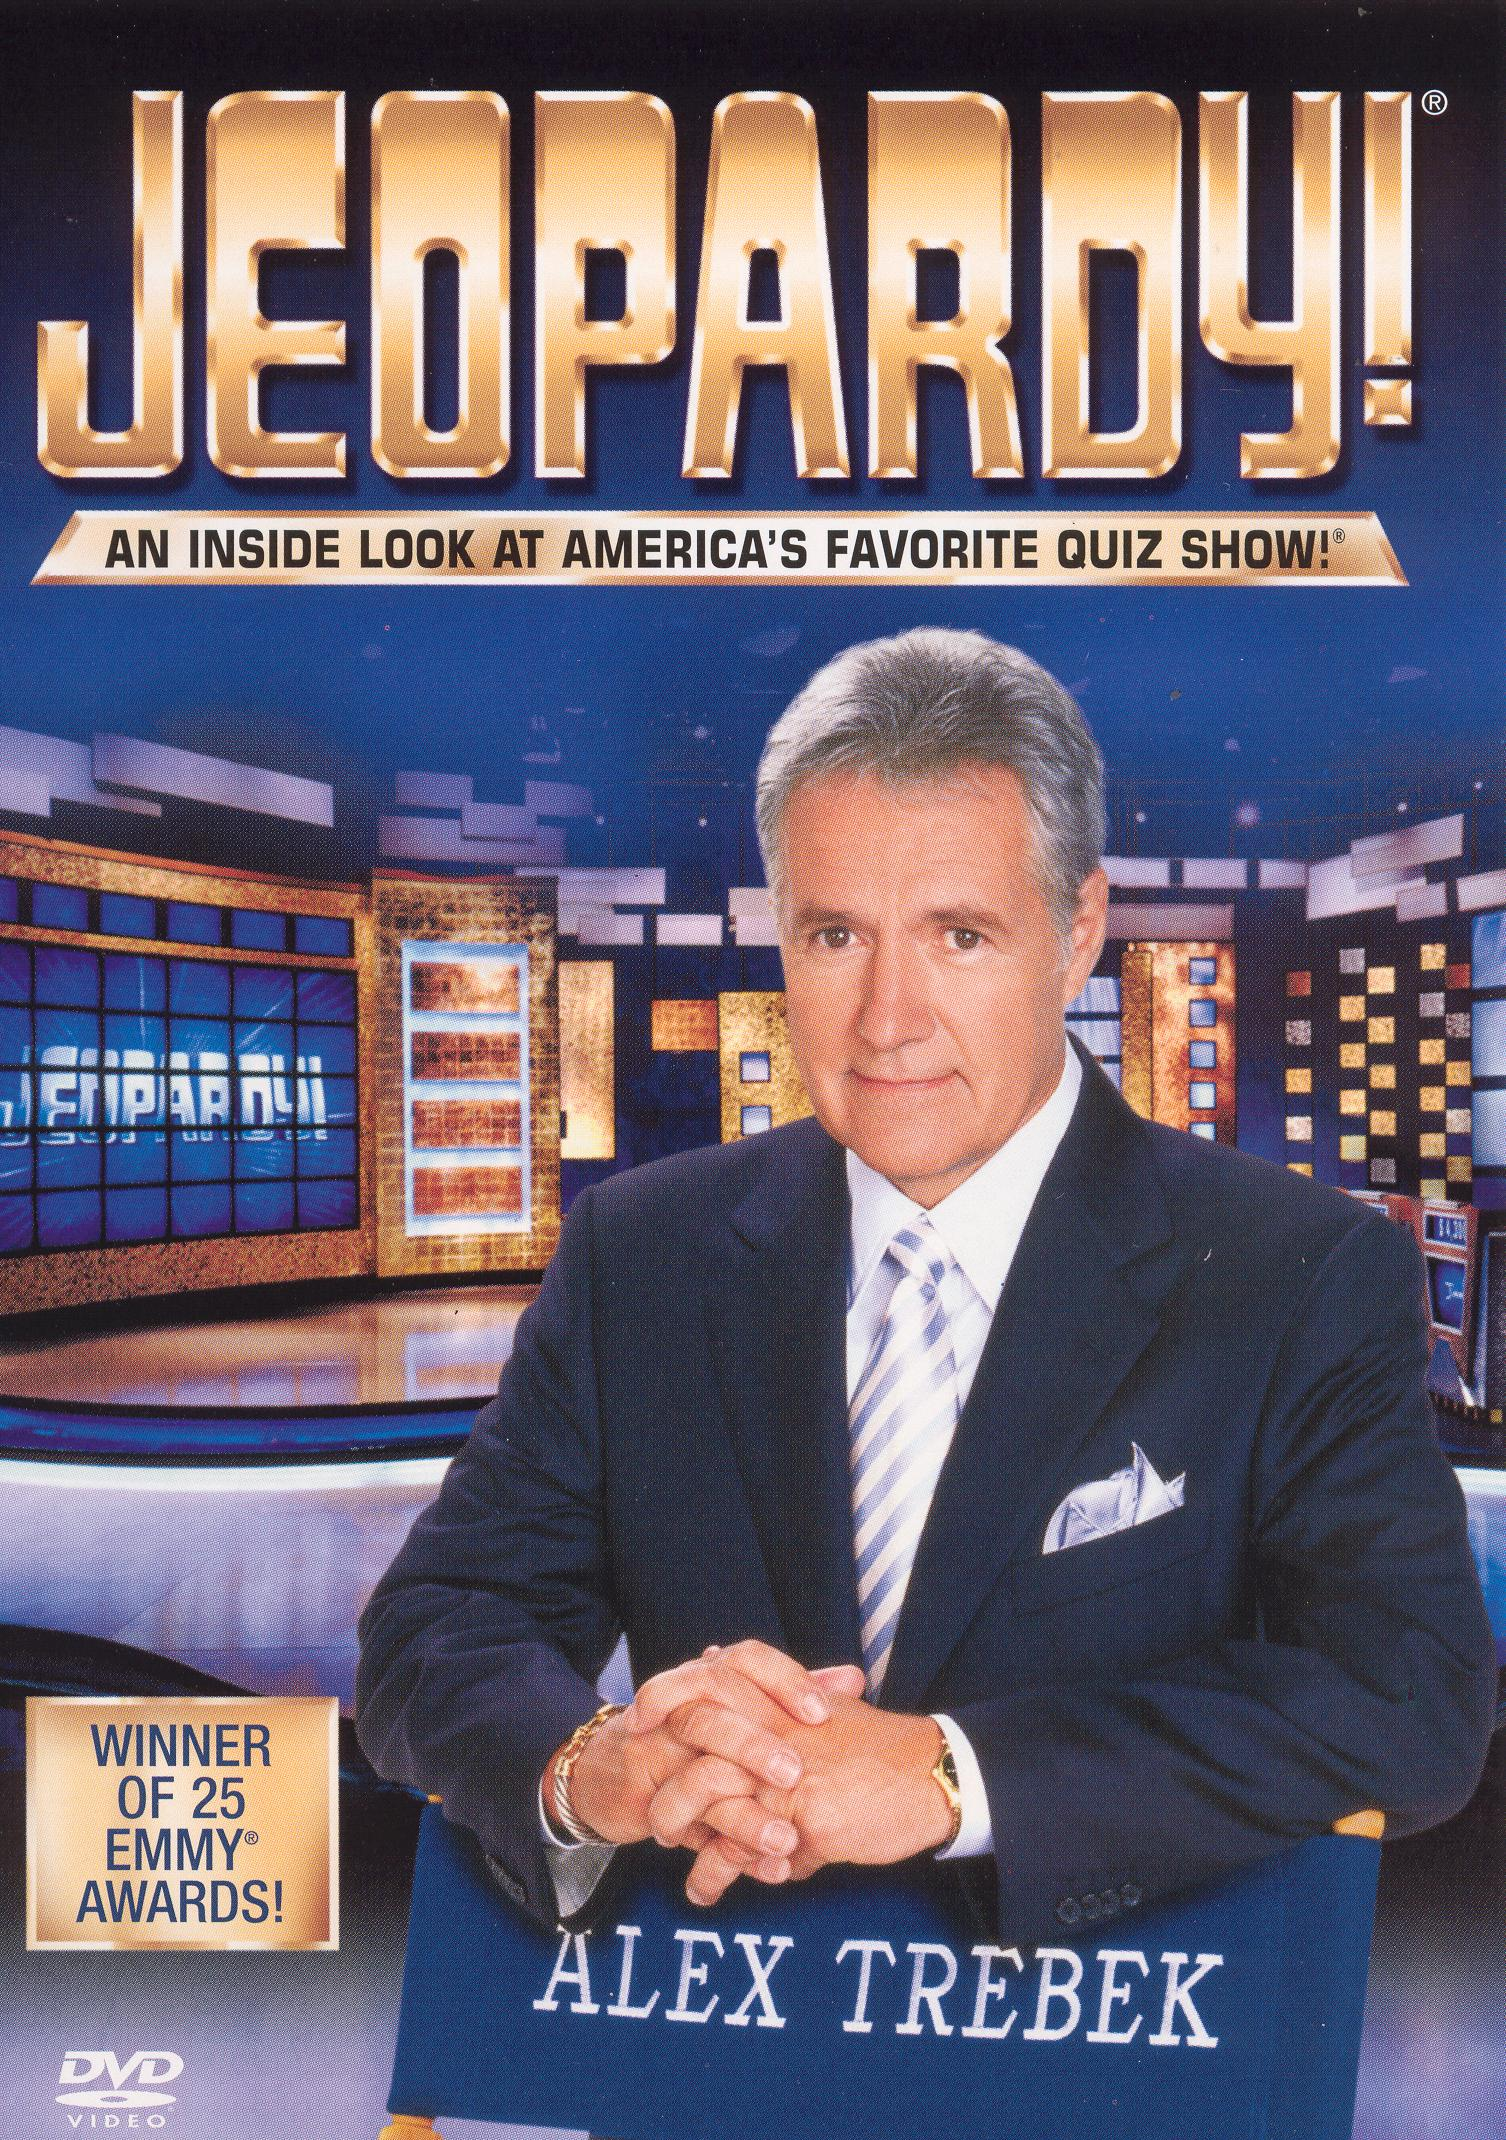 Jeopardy: An Inside Look at America's Favorite Quiz Show!